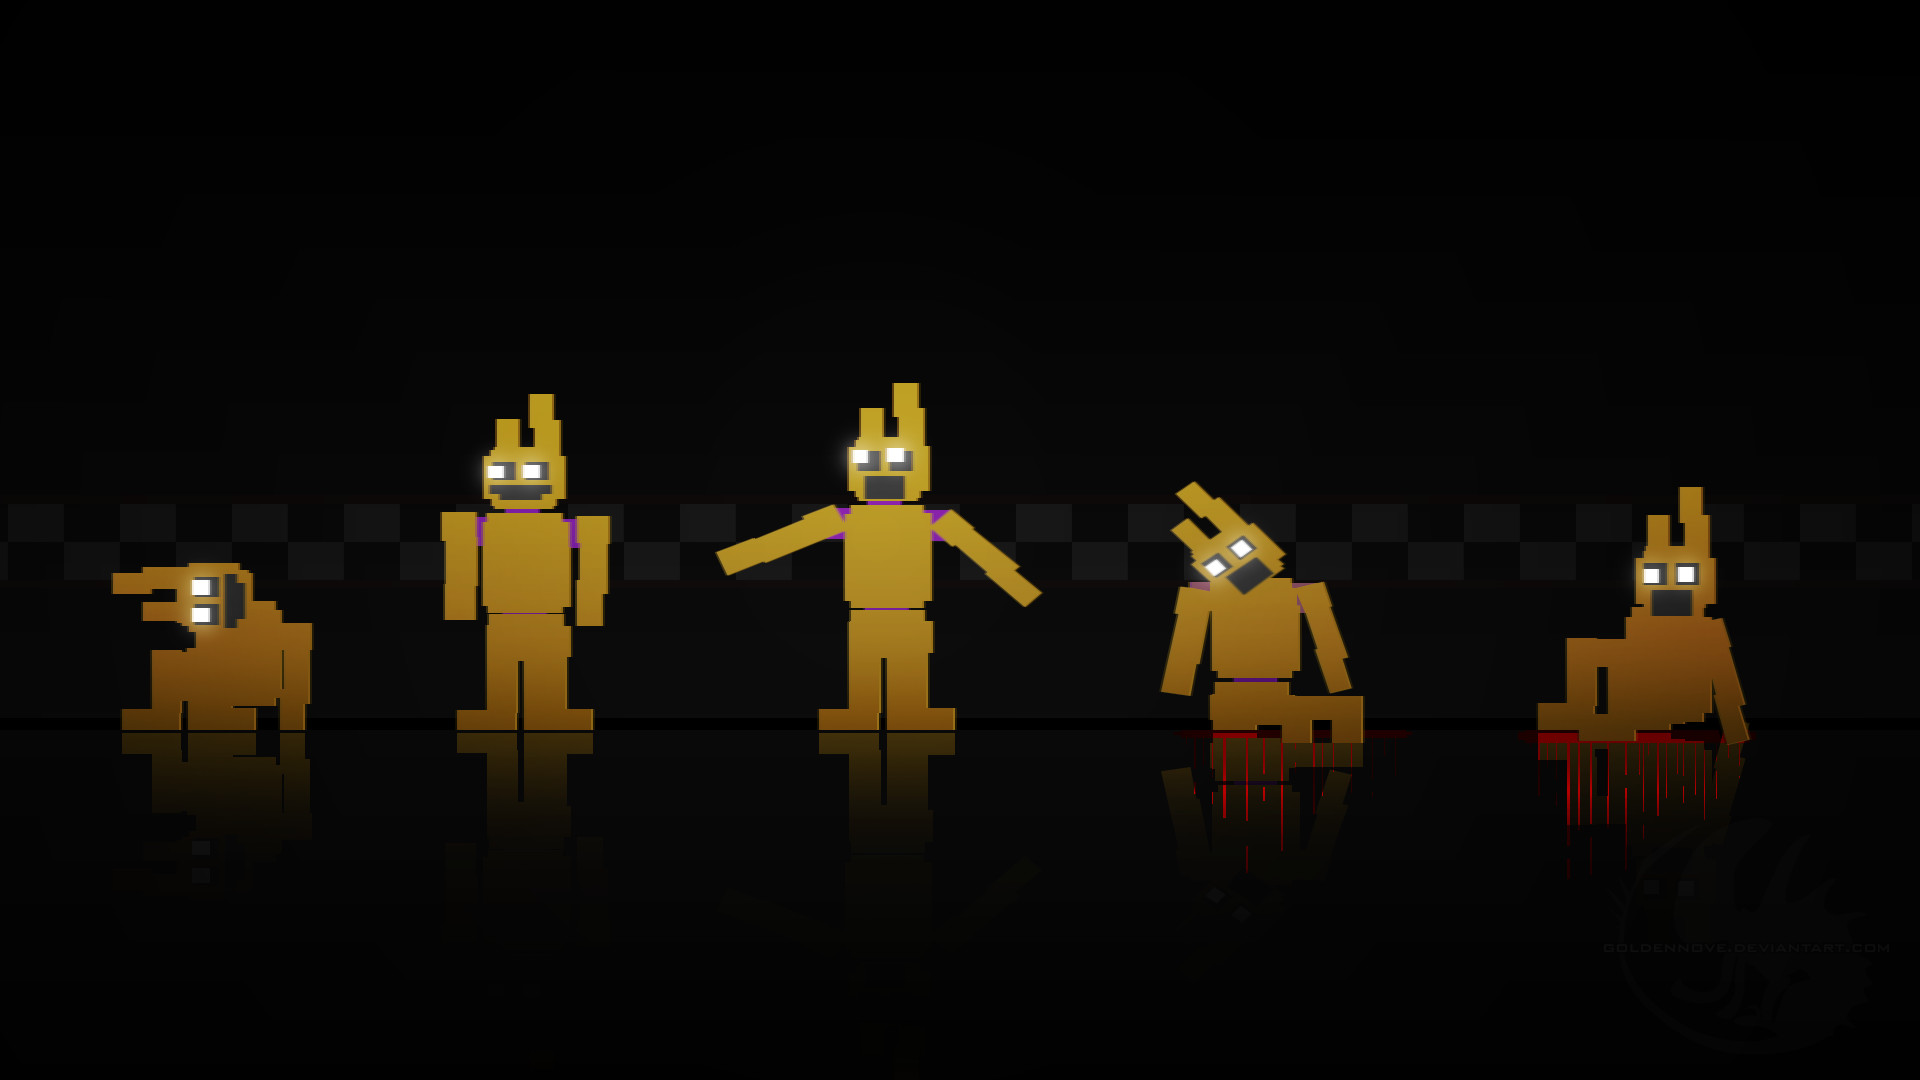 Res: 1920x1080, New Five Nights At Freddys Pics, View #235810418 Five Nights At Freddys  Wallpapers